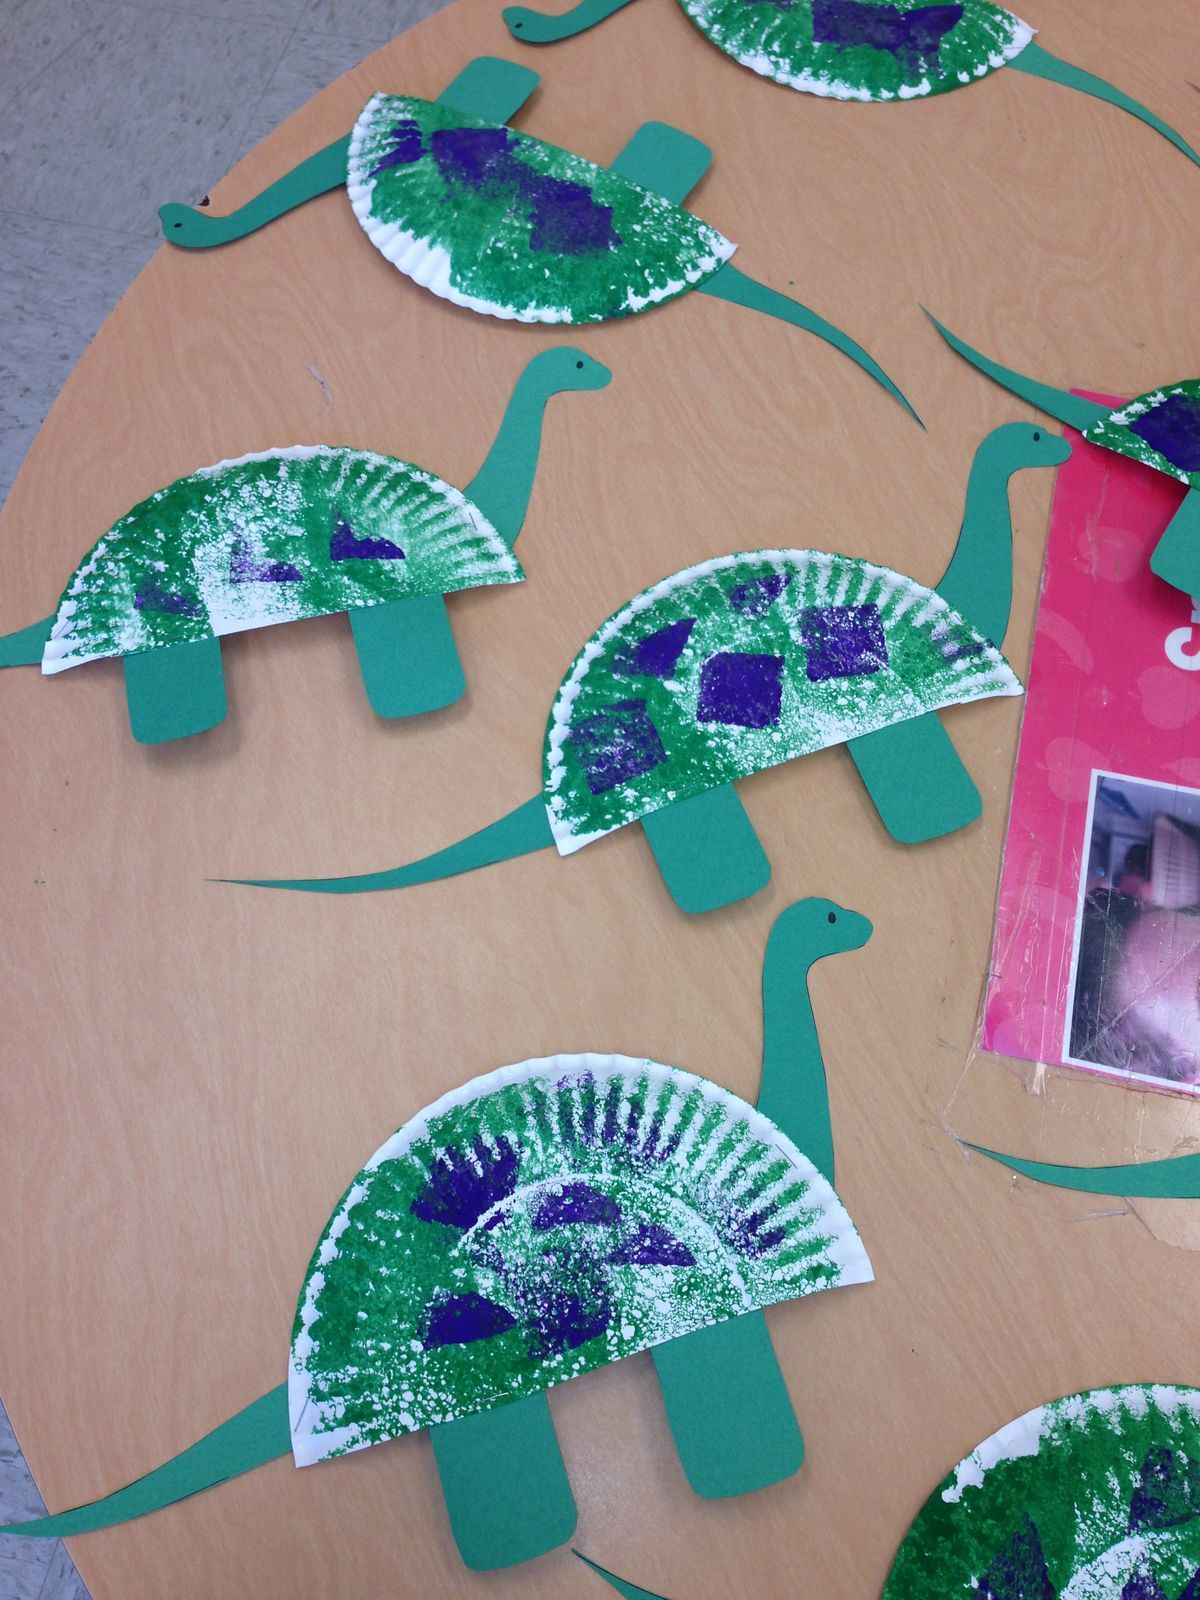 12 crafts for kids using paper plates dinosaur crafts for Paper art projects